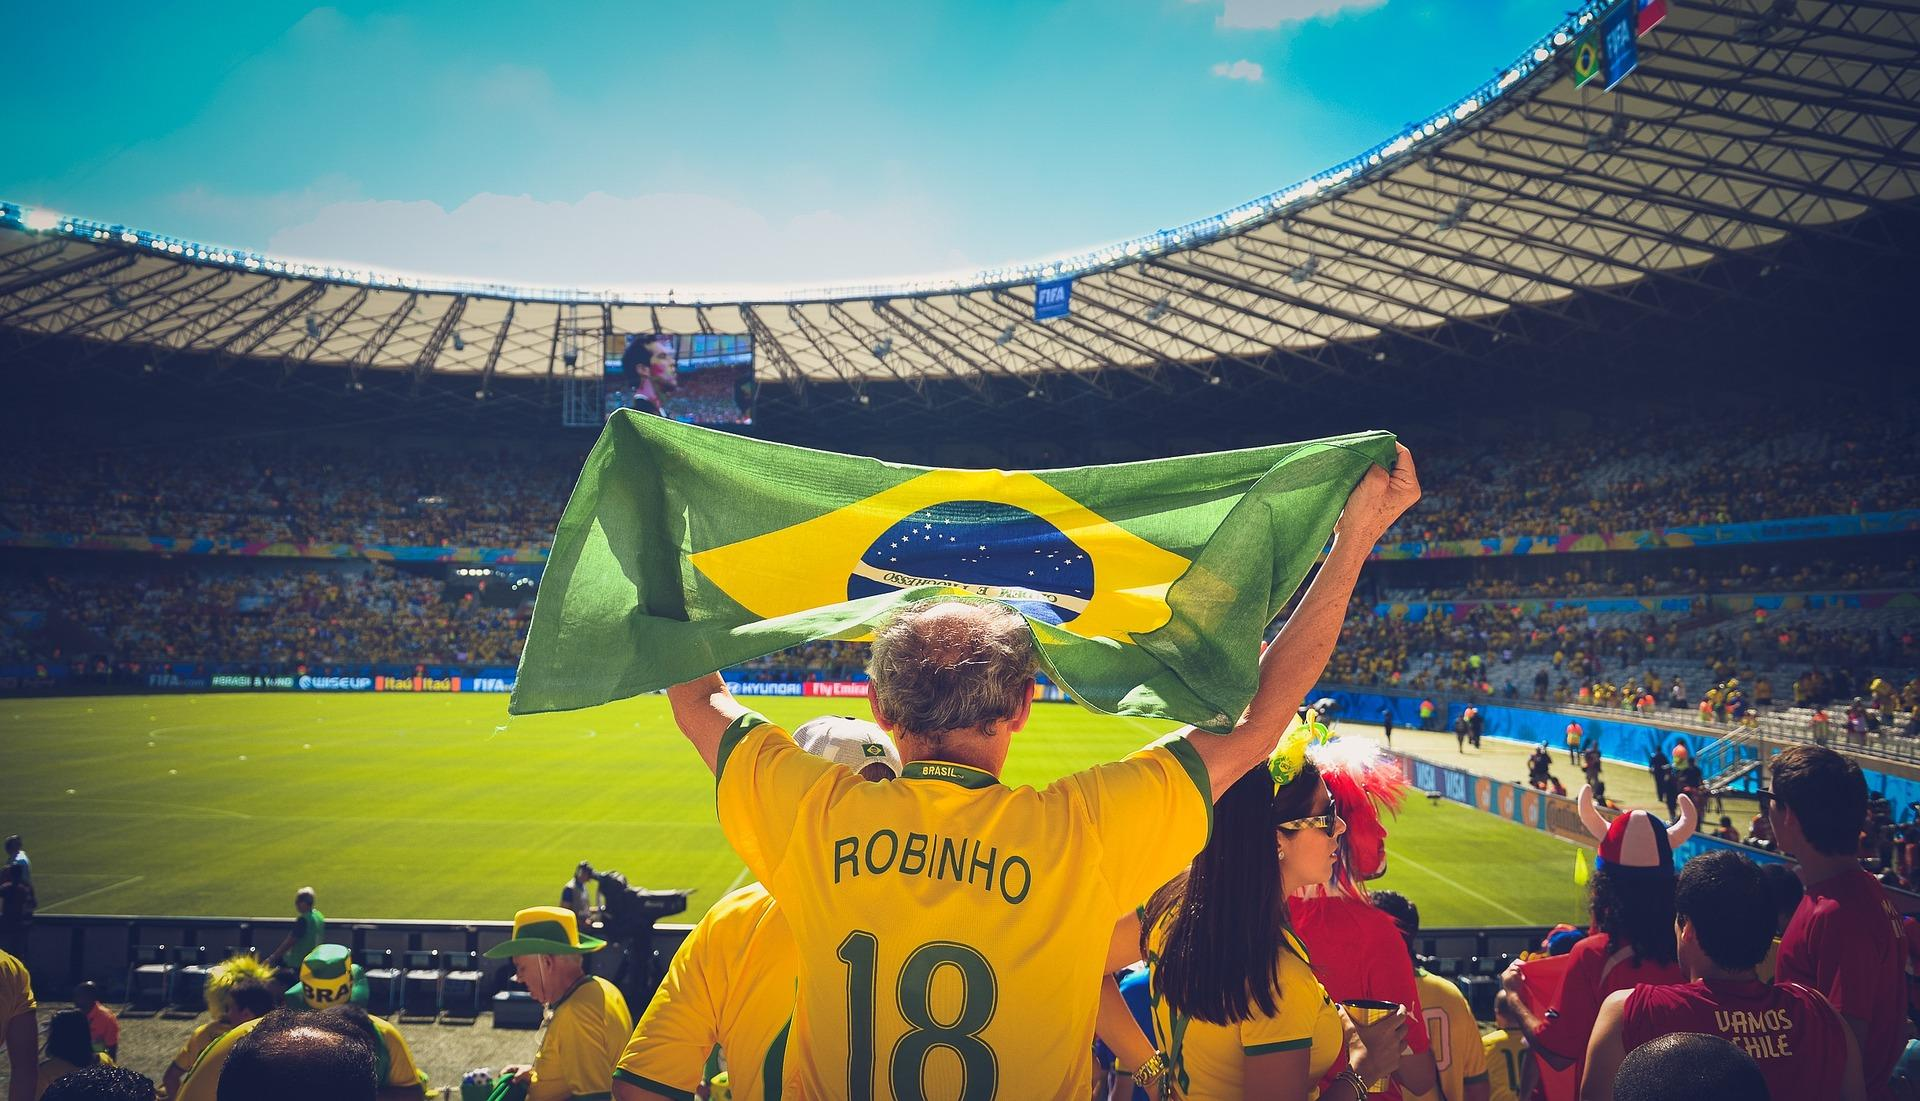 Fan cheers on Brazilian professional football team wearing a Robson de Souza jersey.